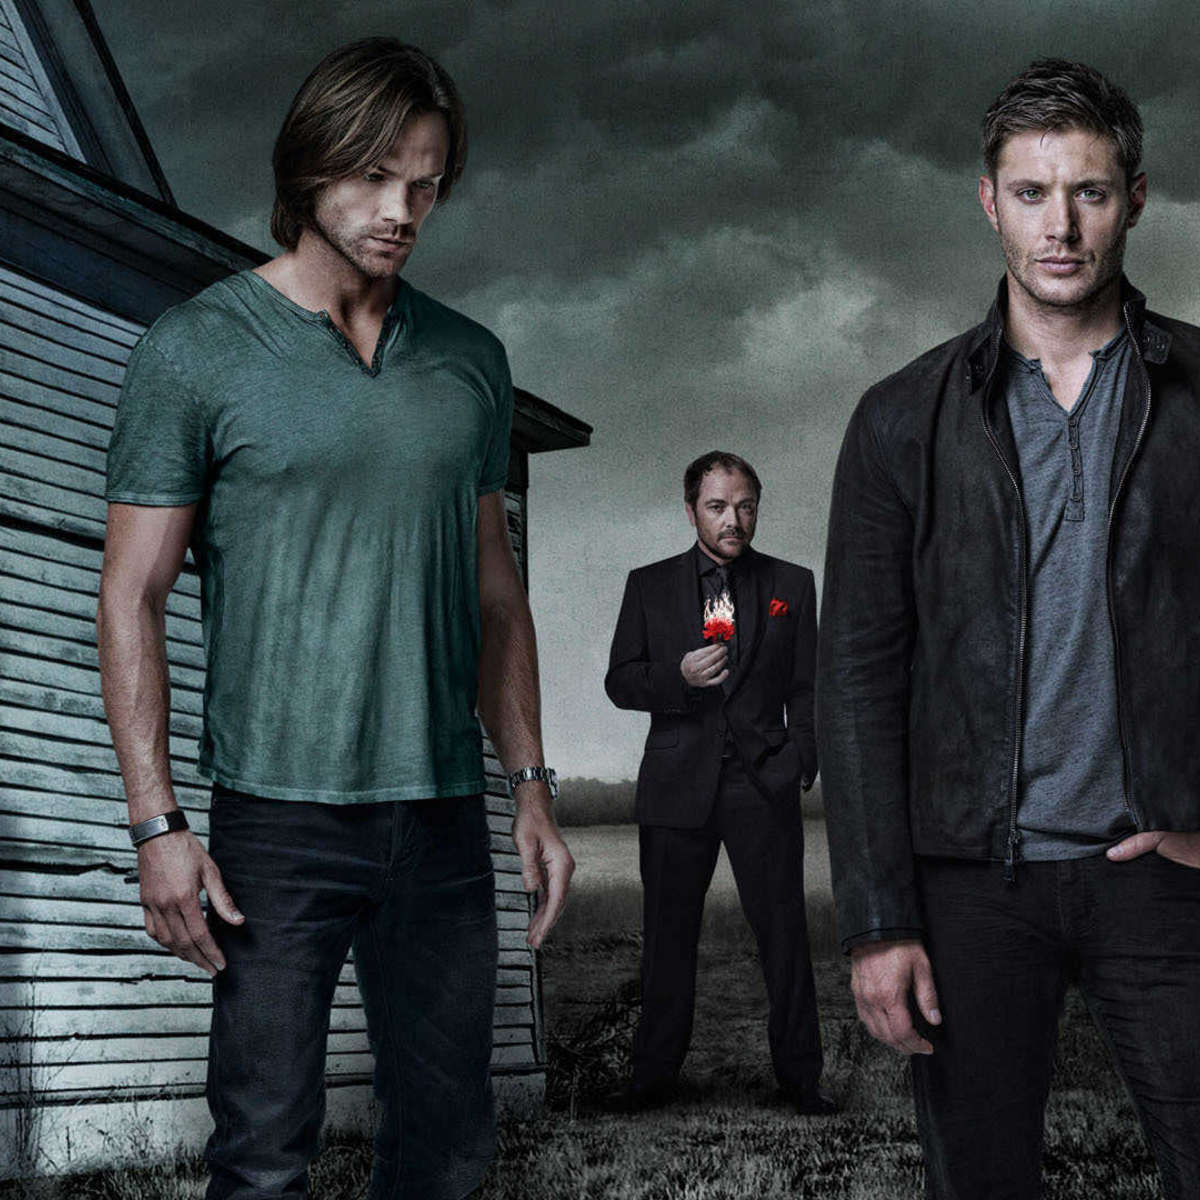 supernatural-season-10-tv-series-wallpapers-hd-hdwallwide-com.jpg